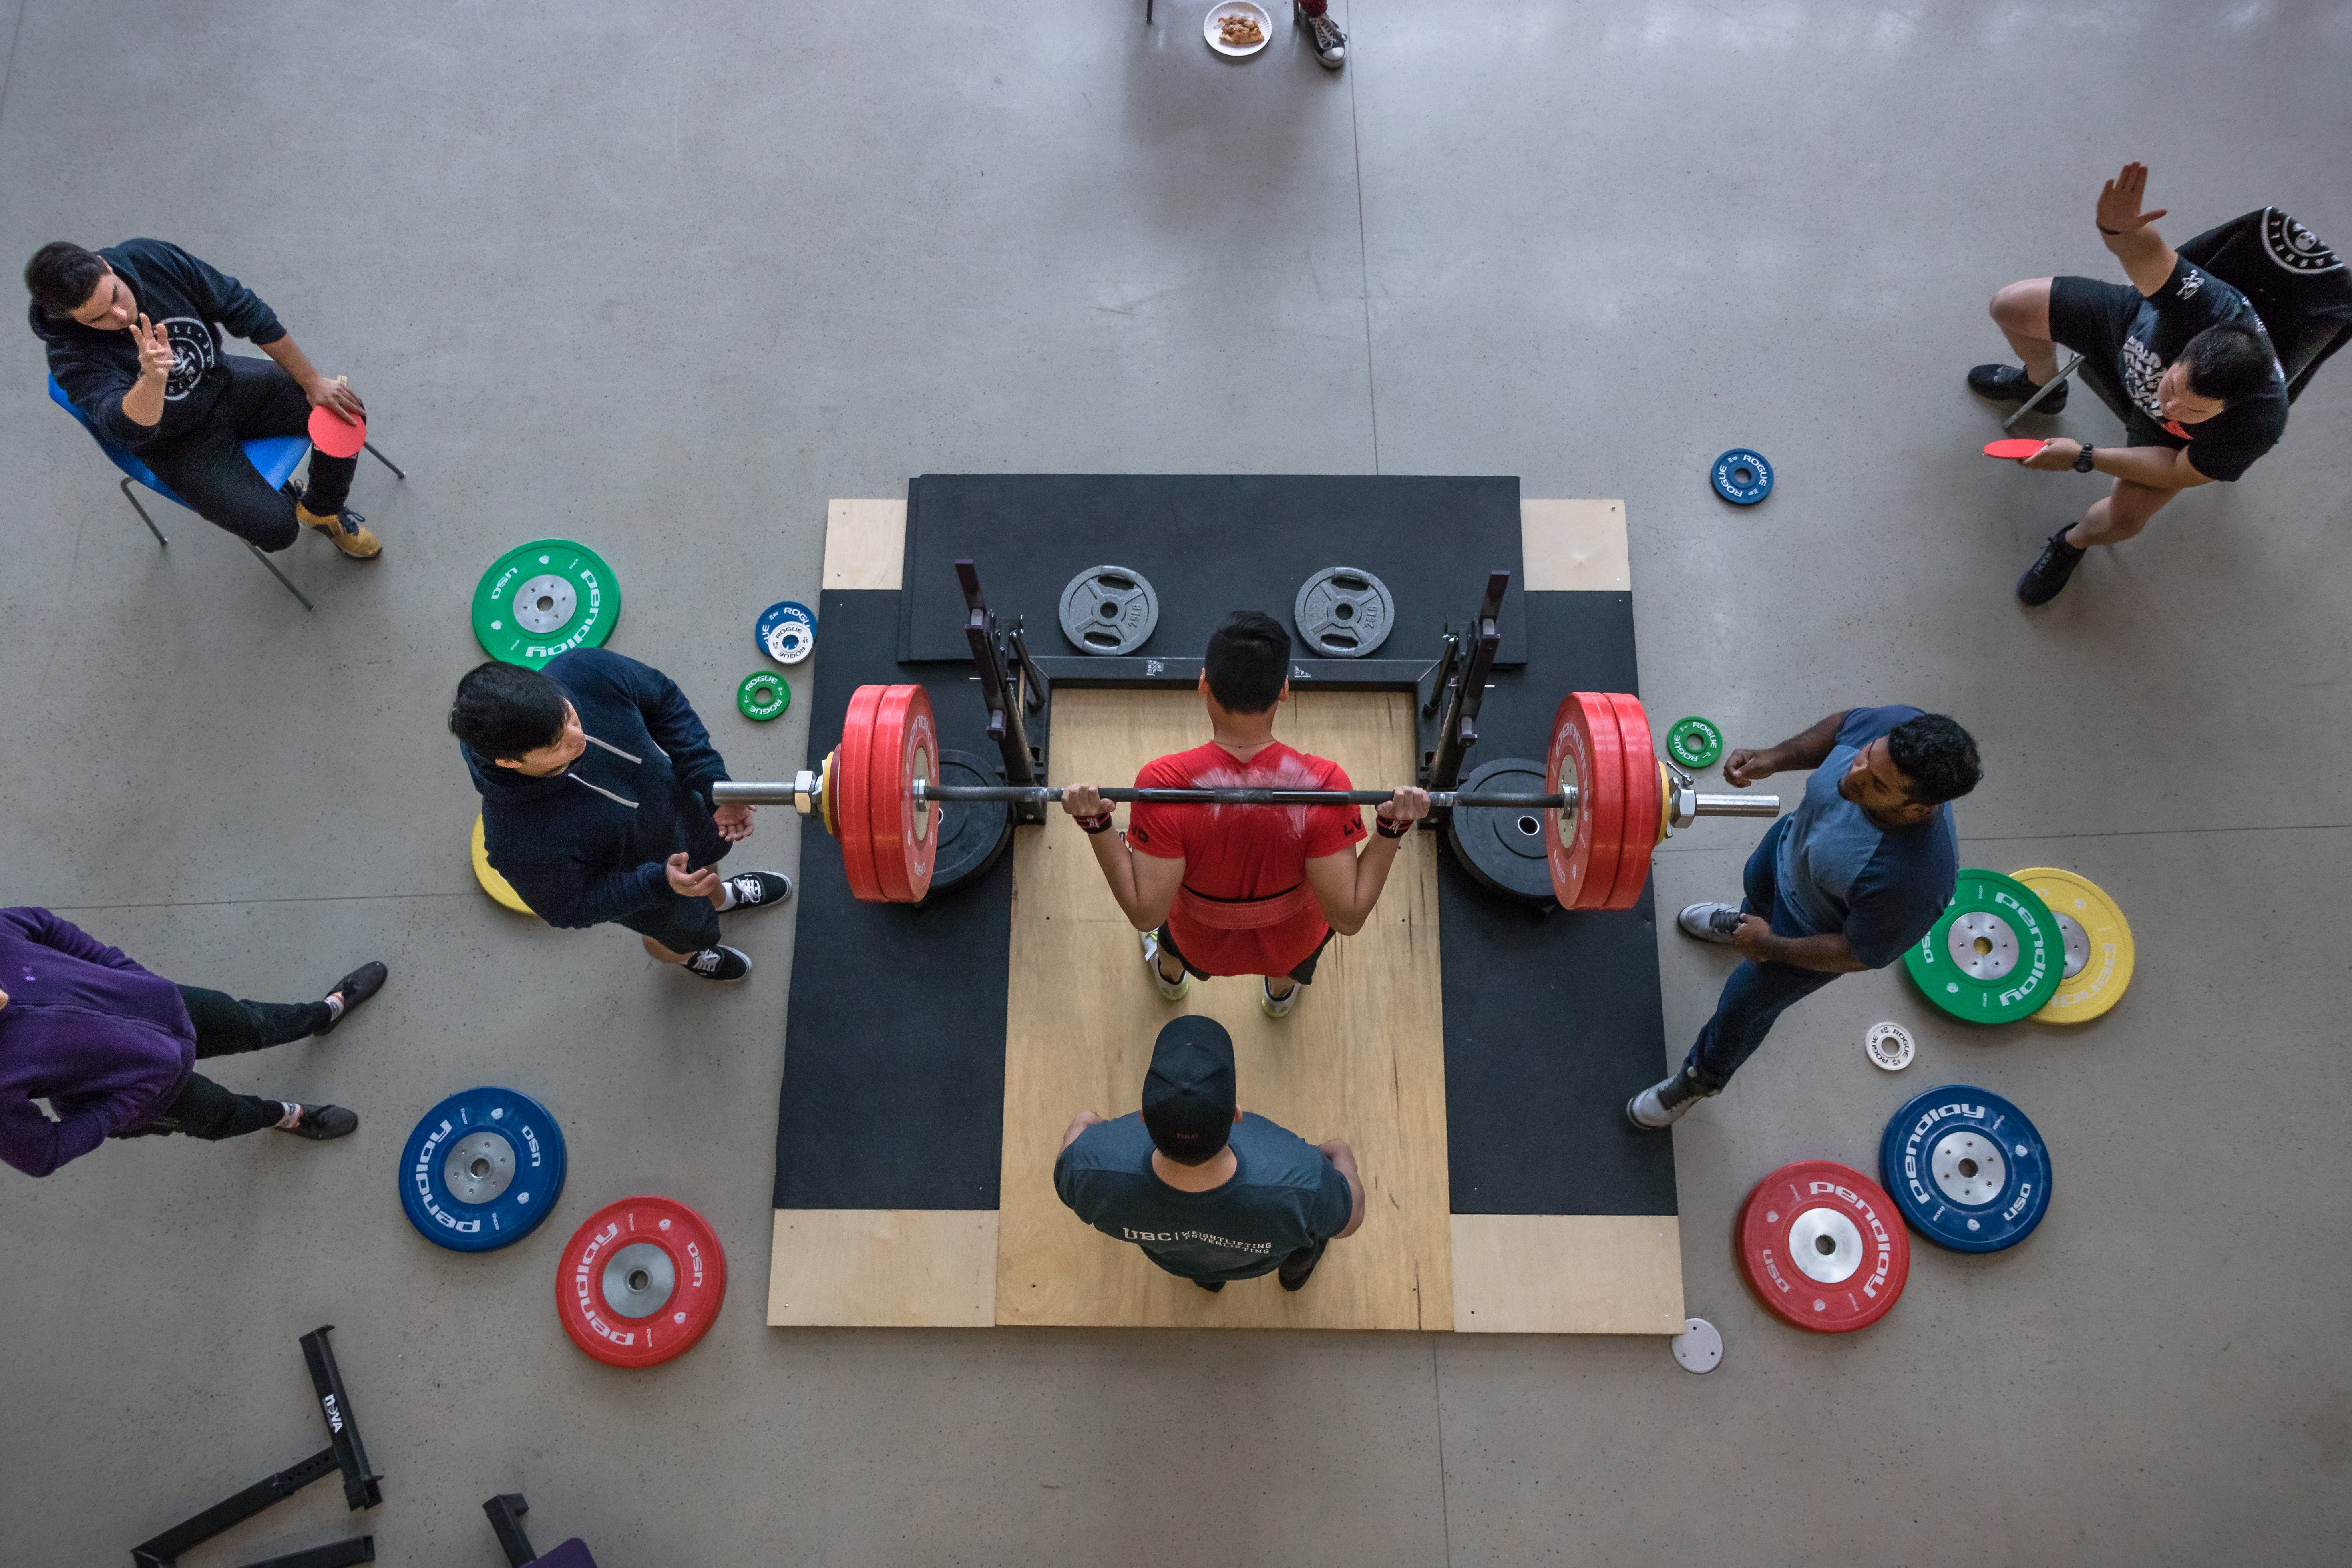 The 6th Annual Weightlifting and Powerlifting Meet was held in the atrium of the Nest.